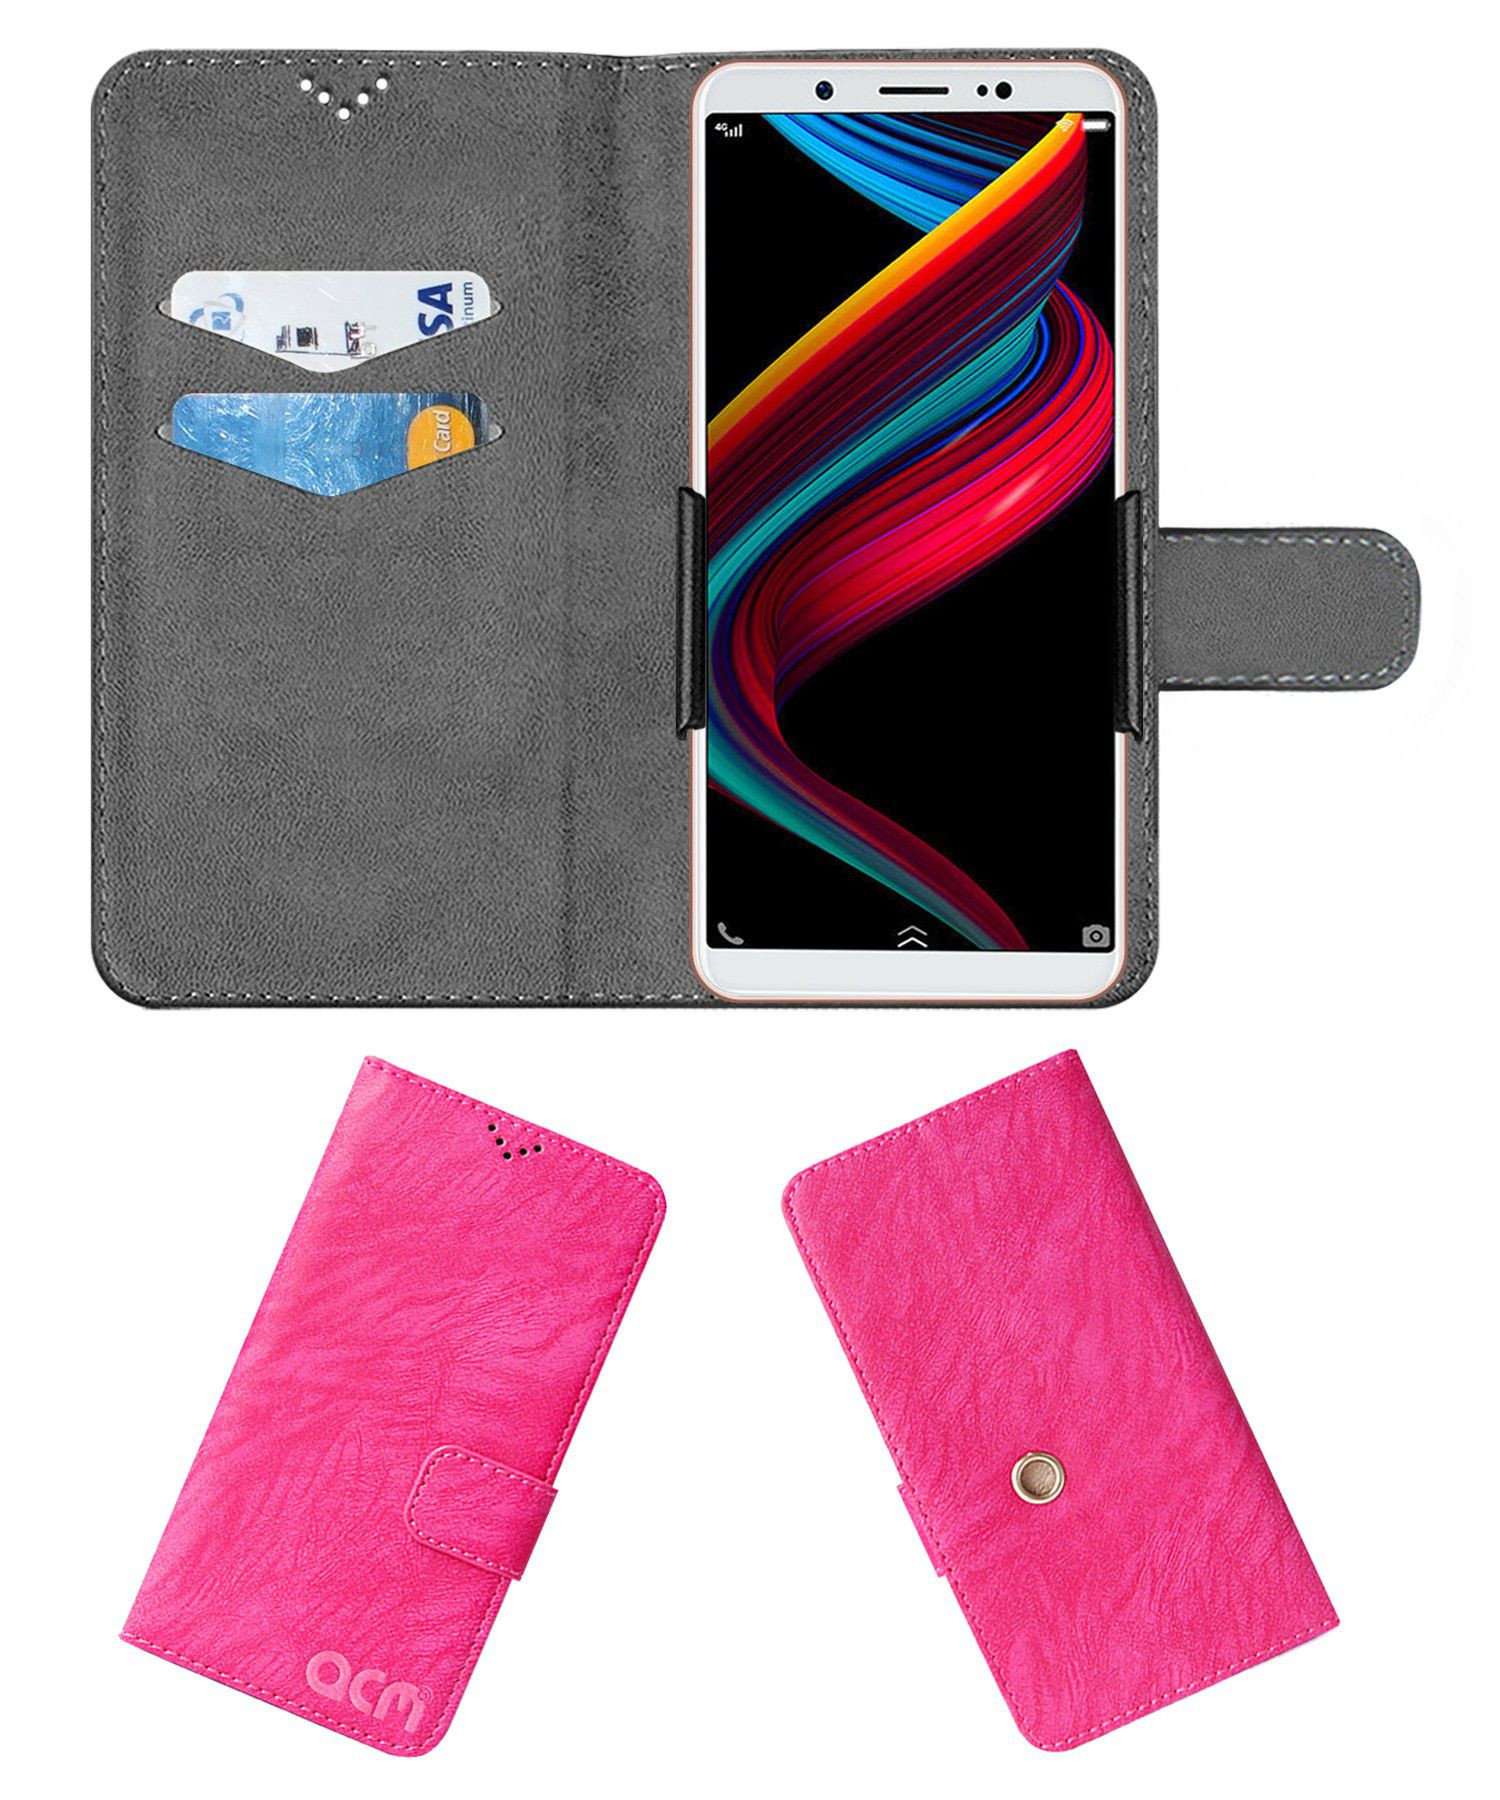 Vivo Z10 Flip Cover by ACM - Pink Clip holder to hold your mobile securely